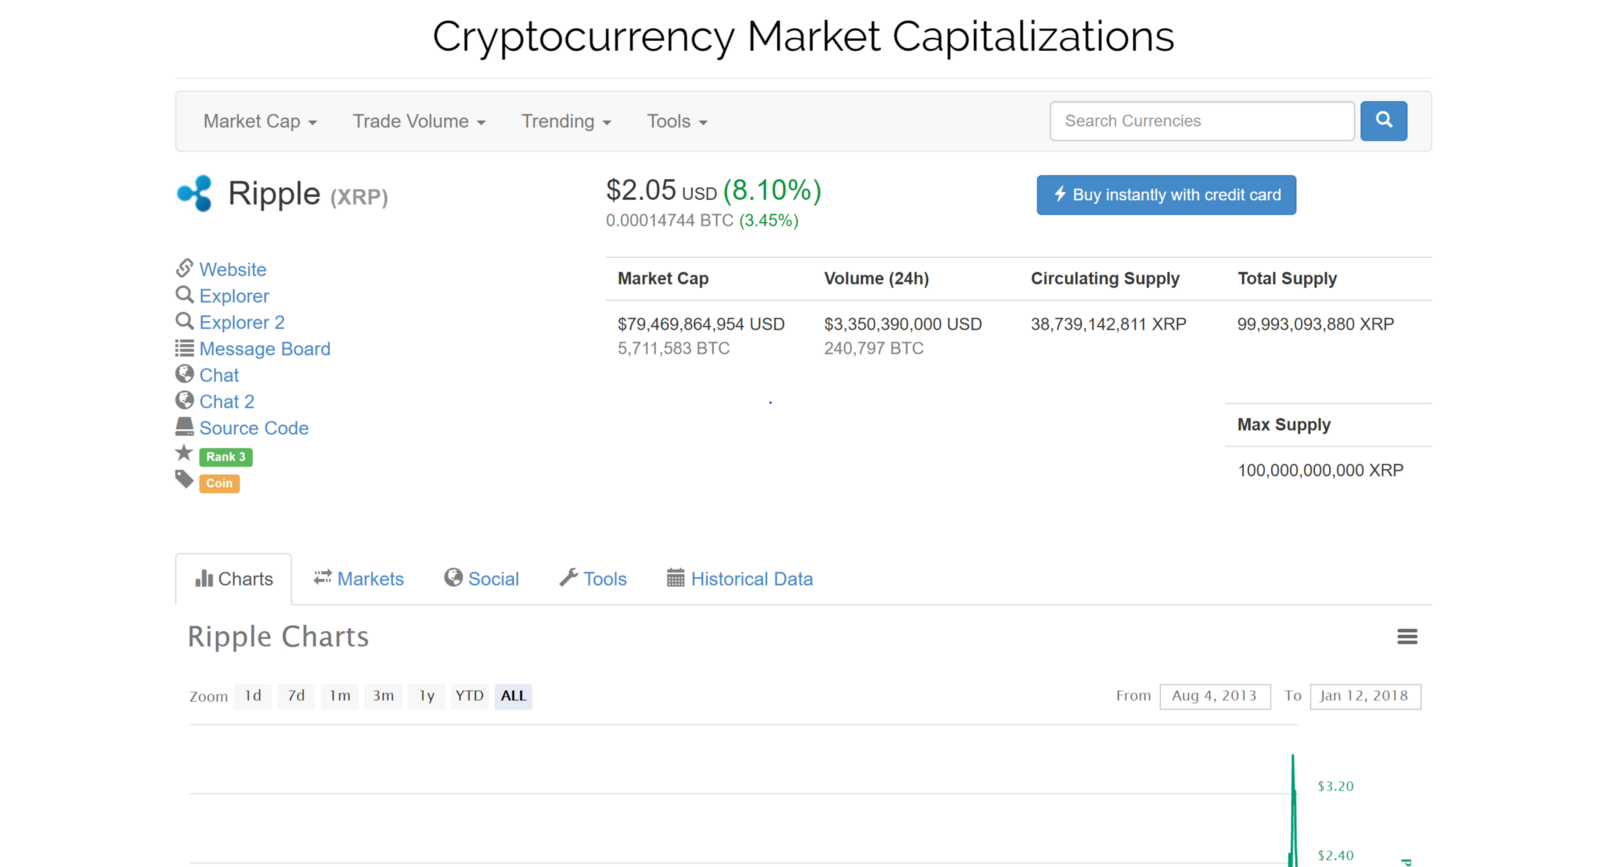 0 to pro crypto trader your ultimate guide to bitcoin and altcoin after i find it and click on ripple ticker symbol xrp it takes me to a page like shown above now on the tabs click markets to see which exchanges sell buycottarizona Image collections